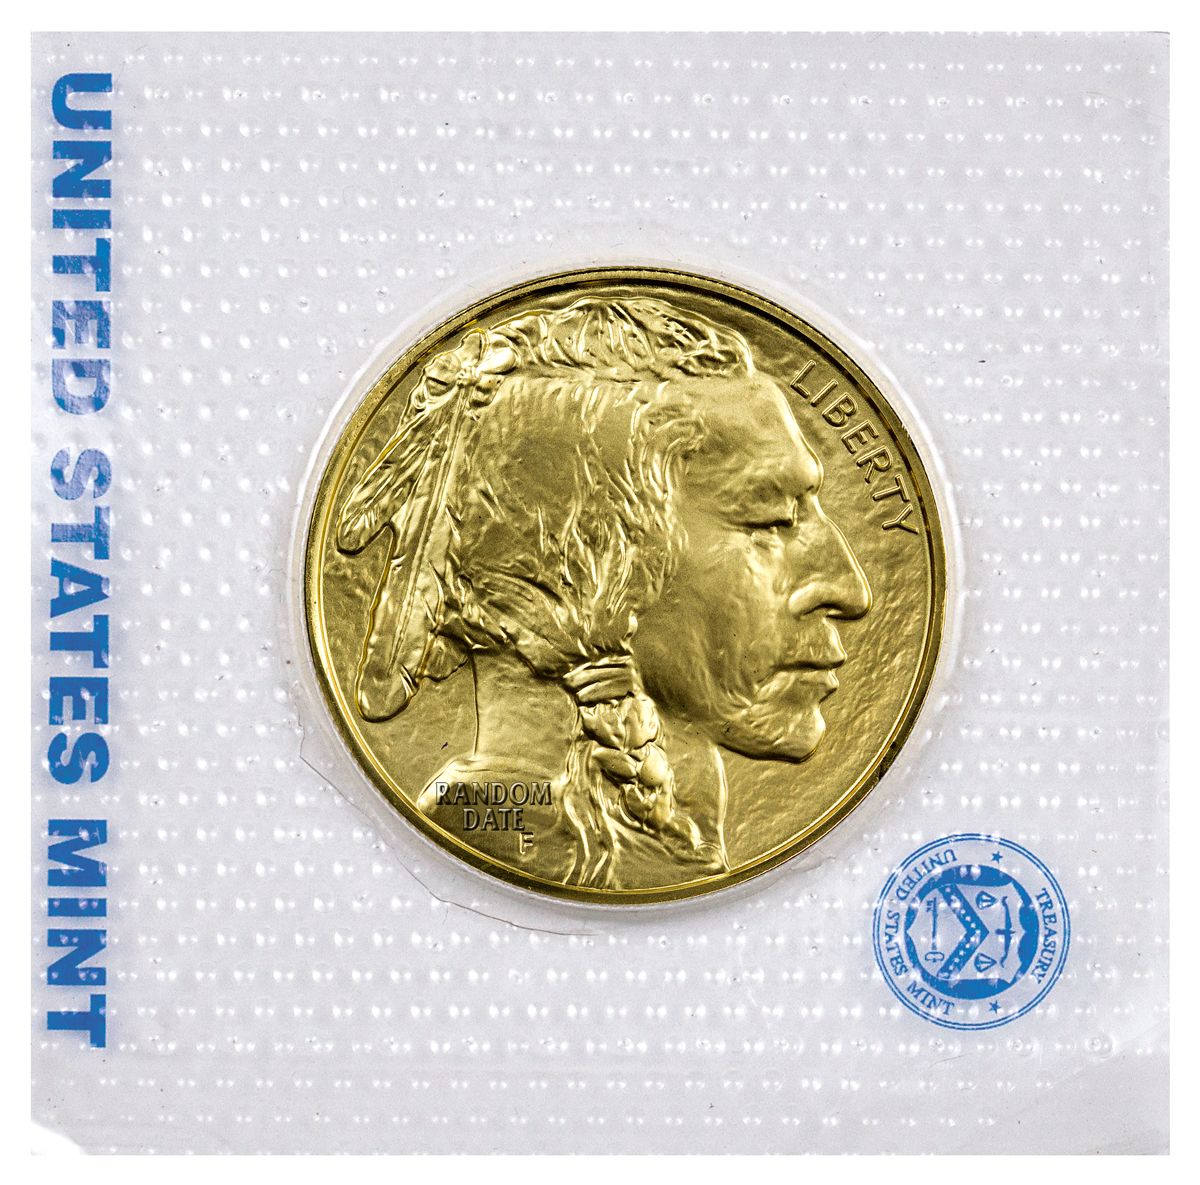 Random Date $50 1 oz. Gold Buffalo - GEM BU (Sealed Original Mint Plastic)